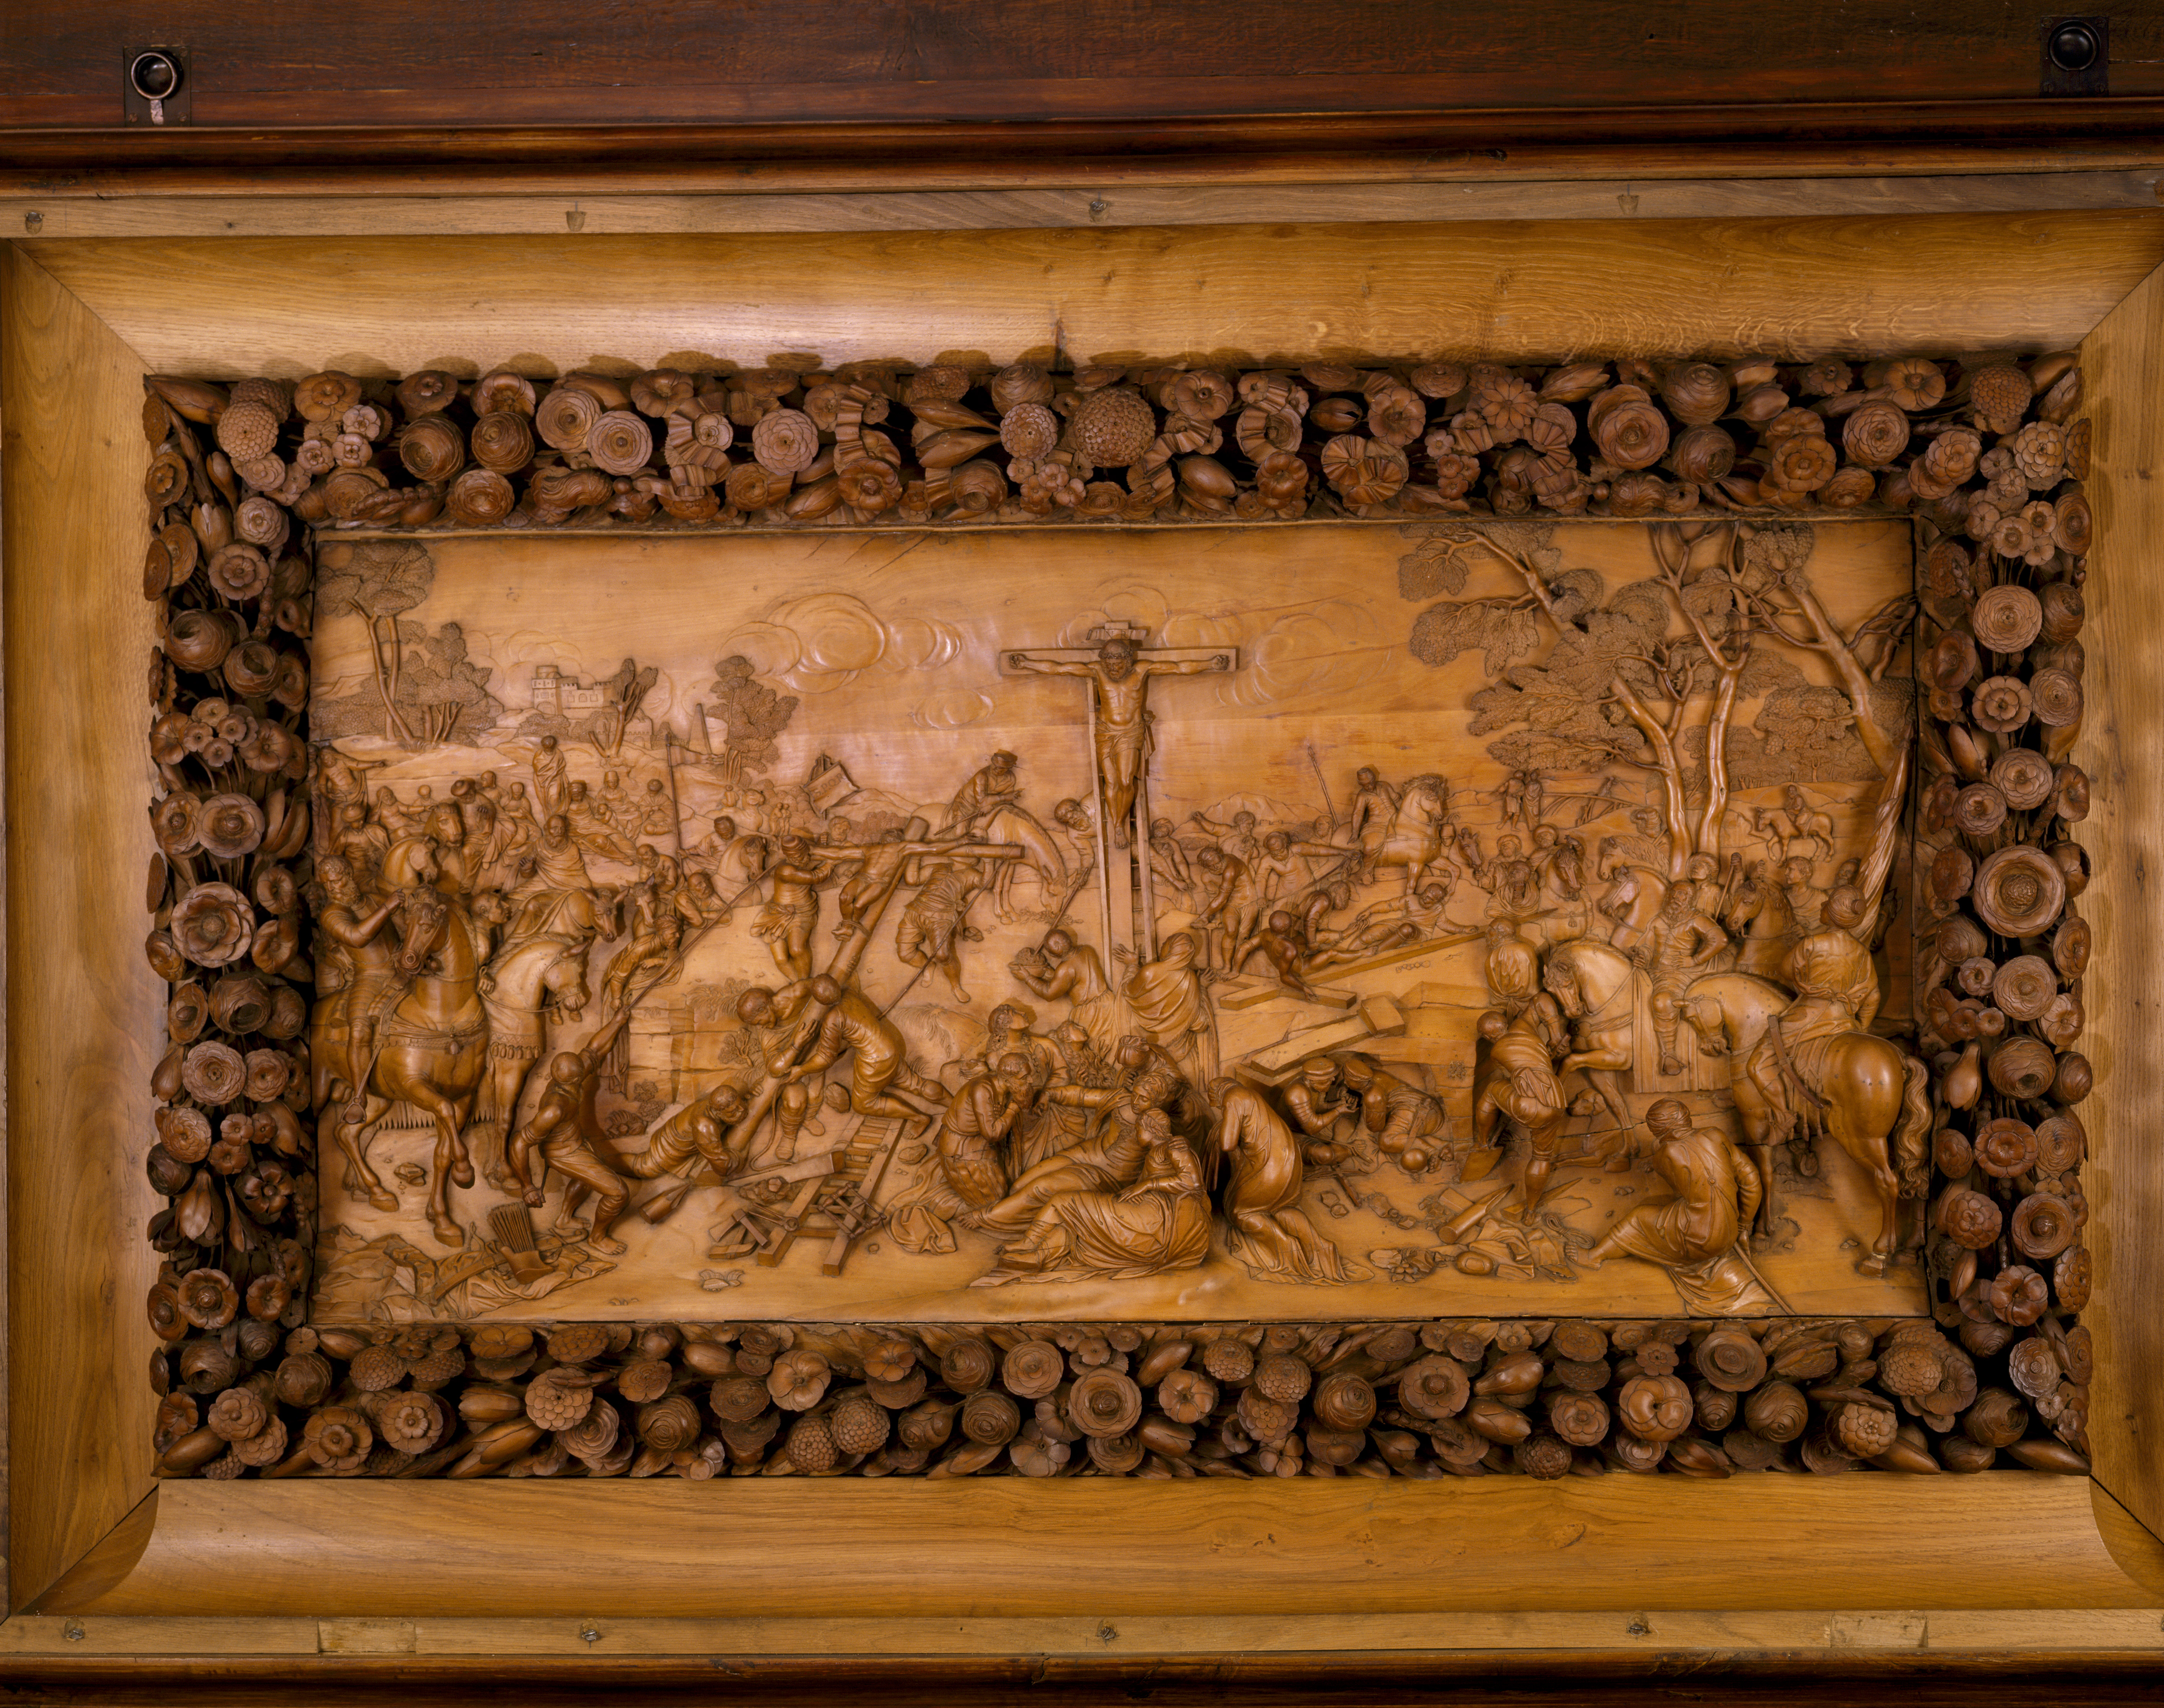 A great Italian masterpiece brought to life as a woodcut by an English genius, one of the National Trust's finest treasures